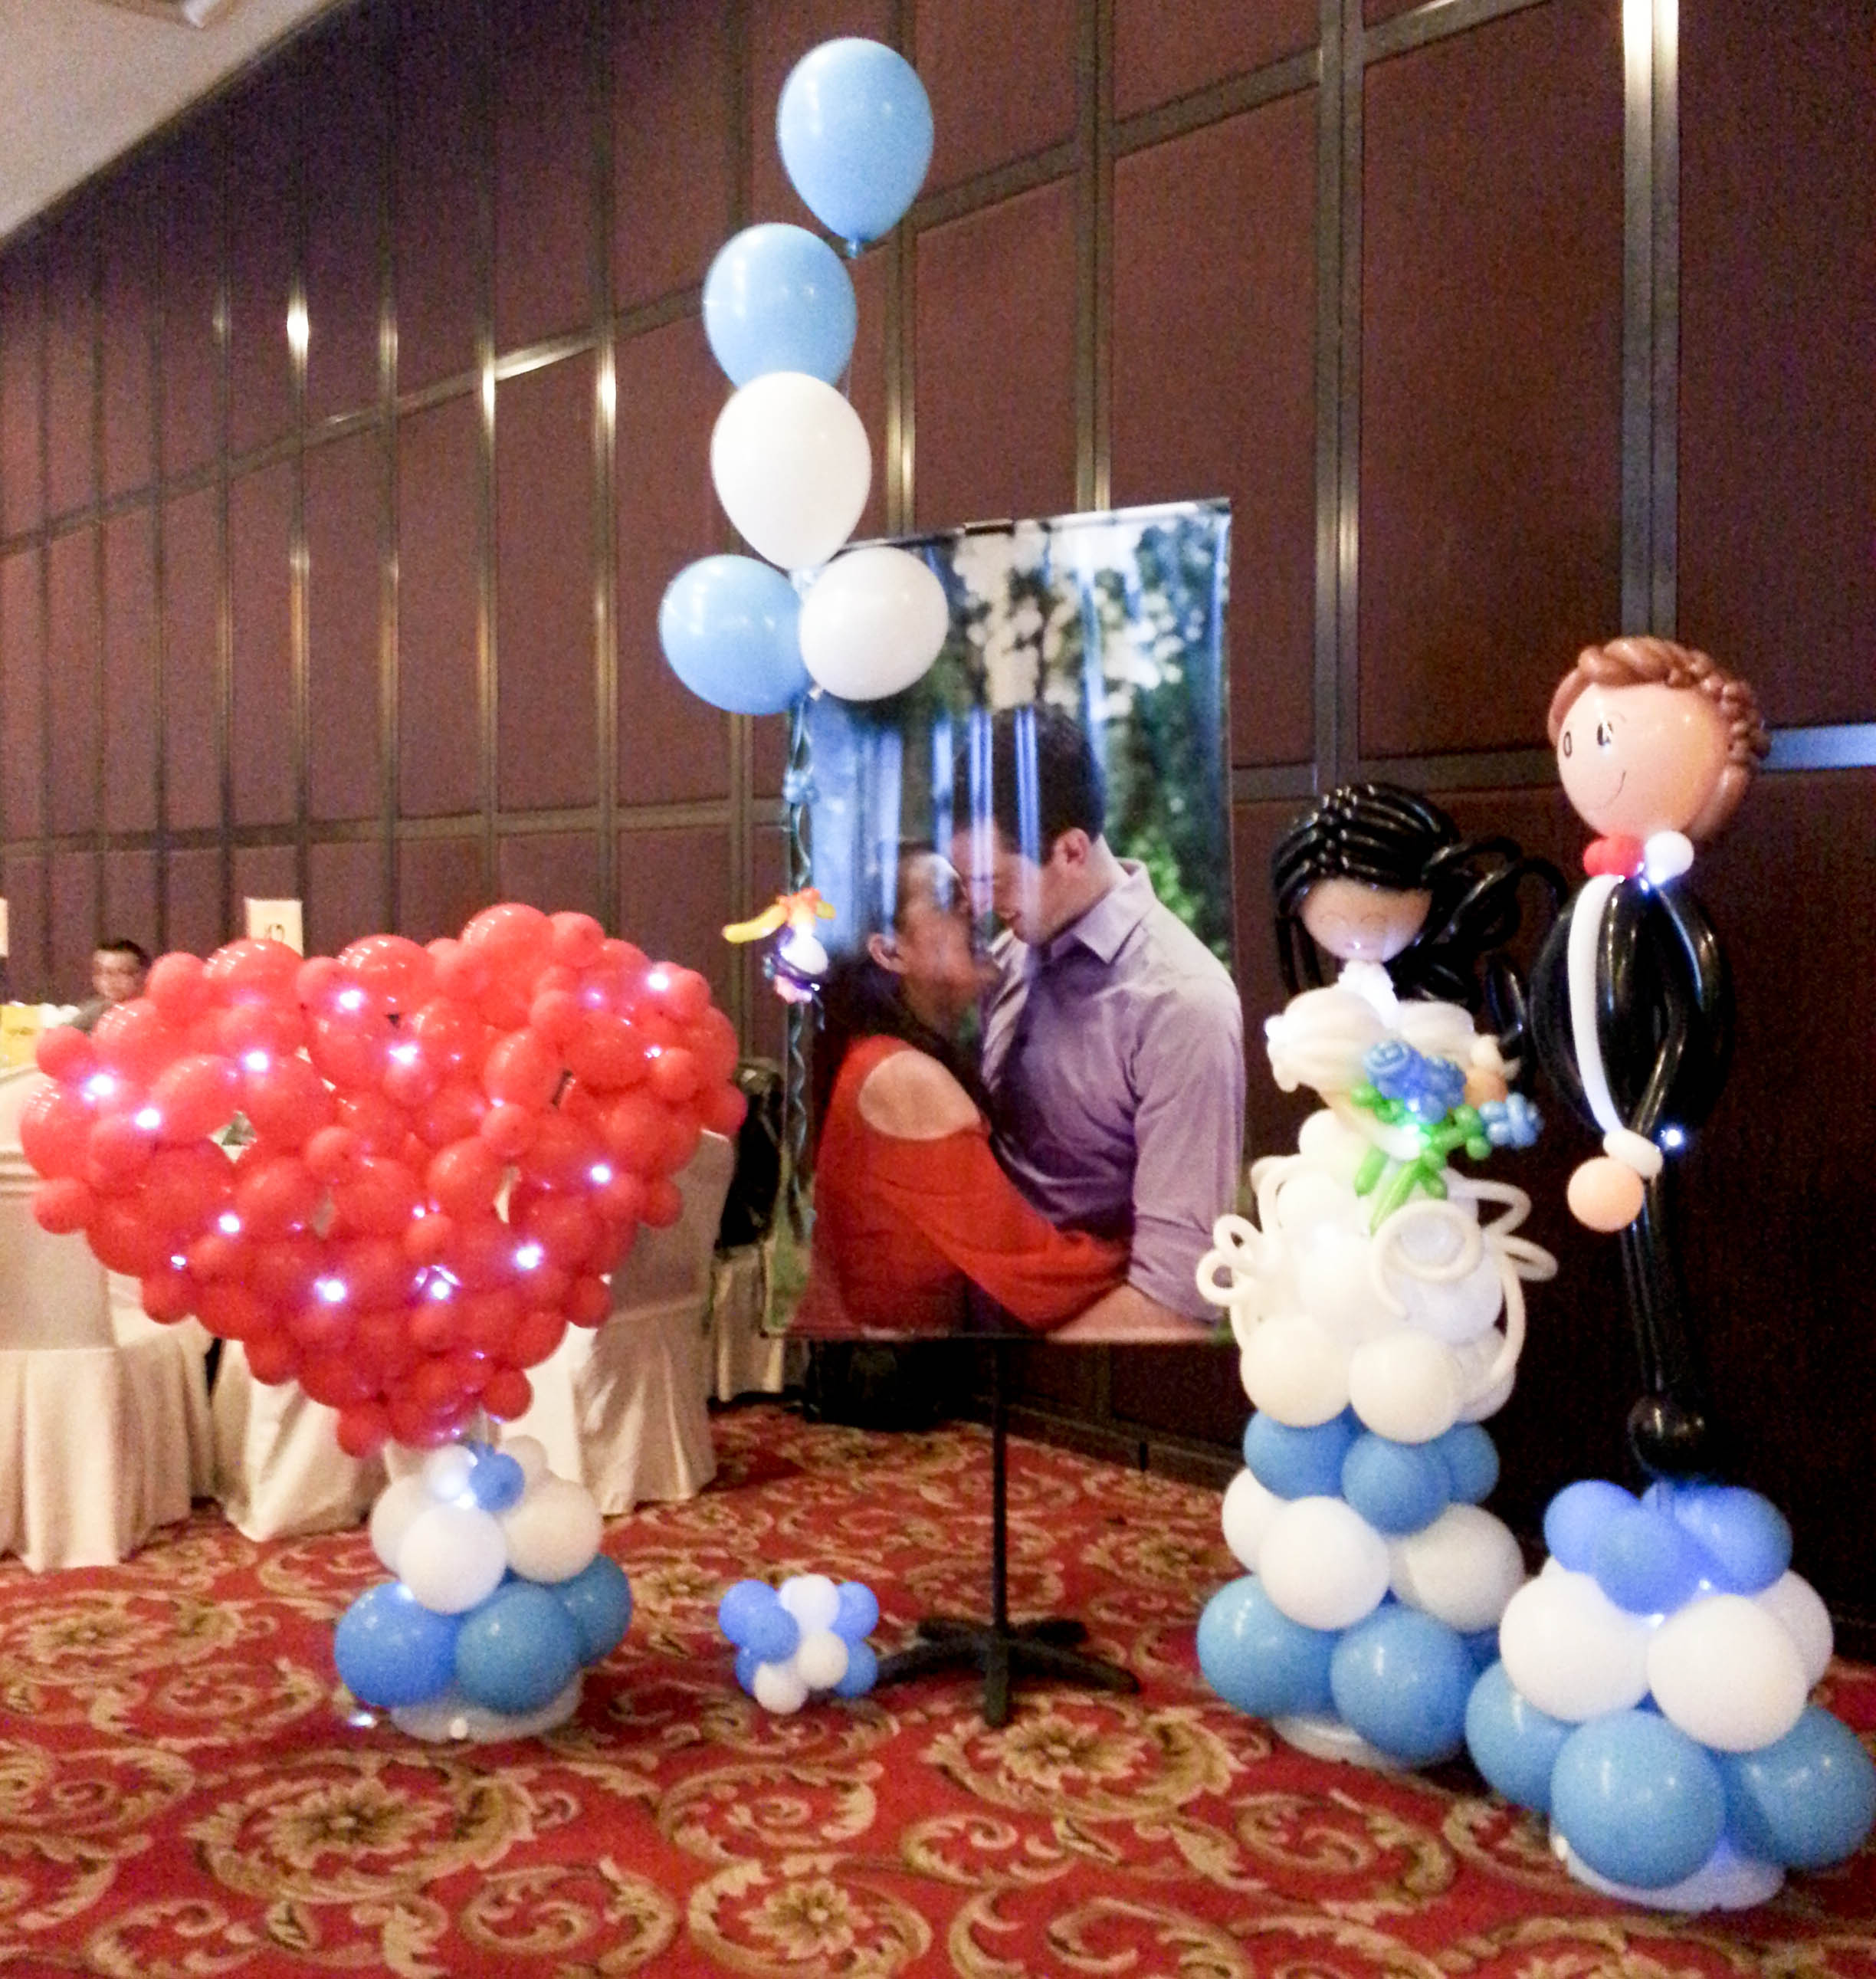 Wedding balloon decorations for events allan friends studios want allan friends studios wedding balloon decorations at your event in kuala lumpur kl petaling jaya pj the klang valley selangor or elsewhere junglespirit Image collections